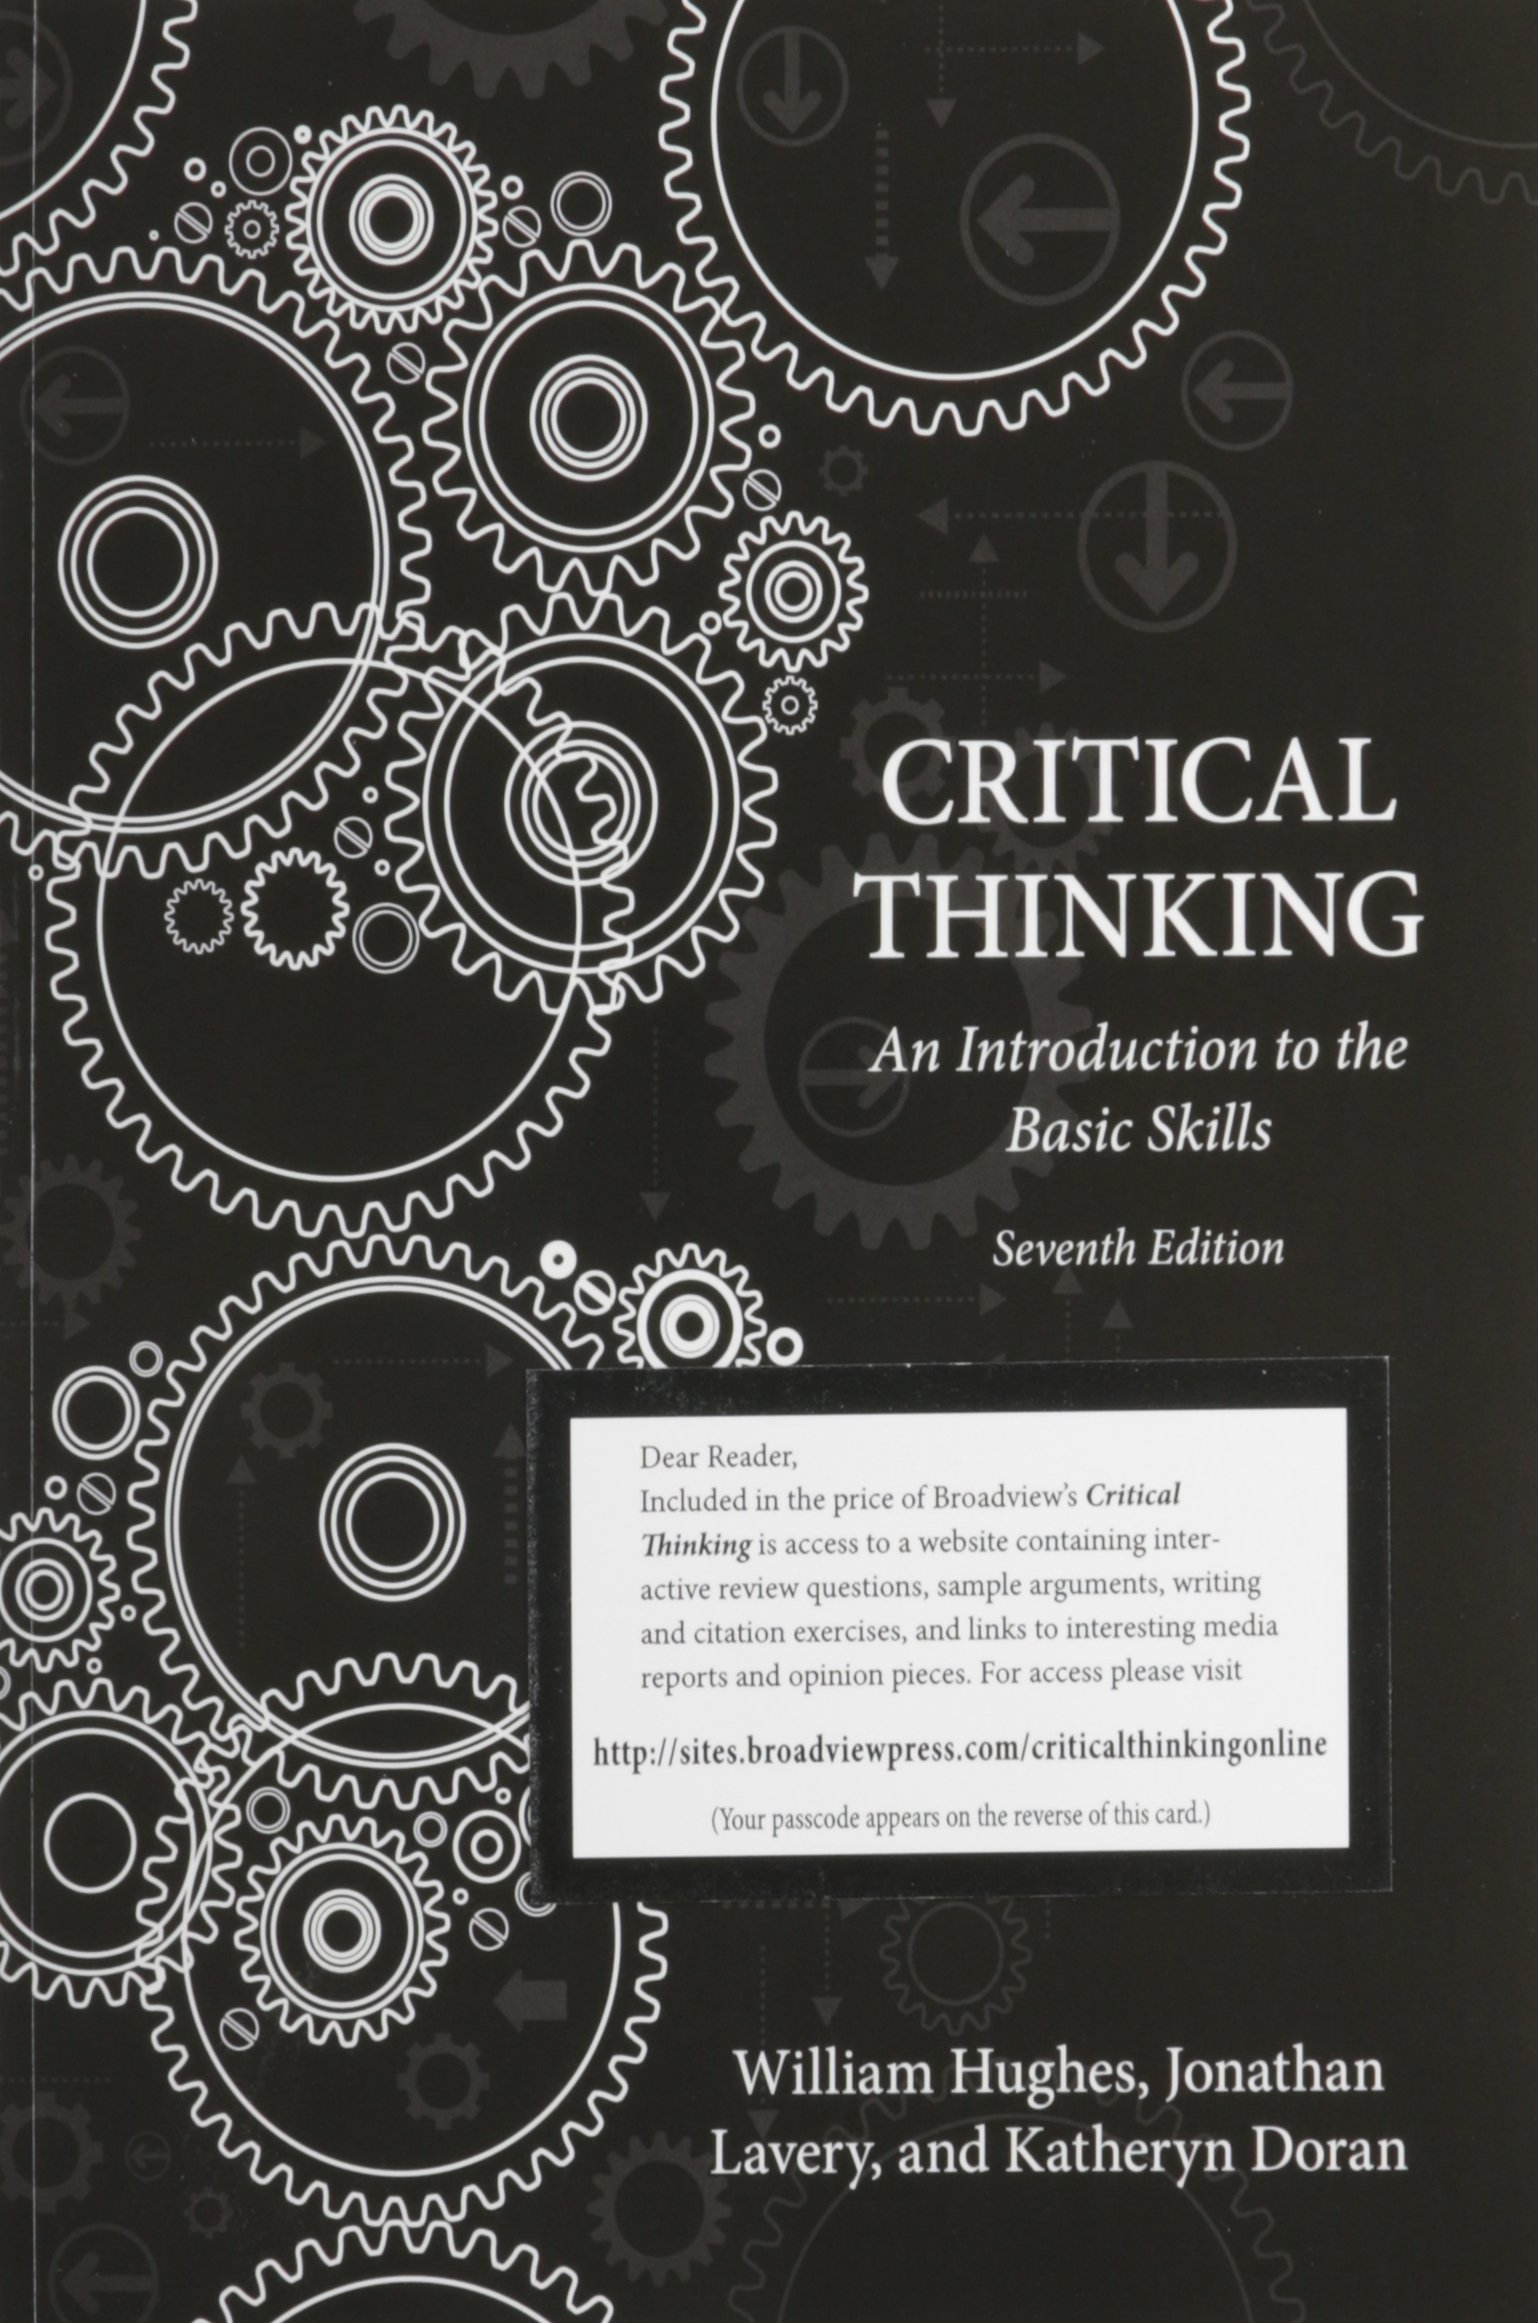 critical thinking reading and writing 7th edition ebook Rereading america: cultural contexts for critical thinking and writing ninth edition ed gary colombo, robert cullen, bonnie lisle pdf ebook.